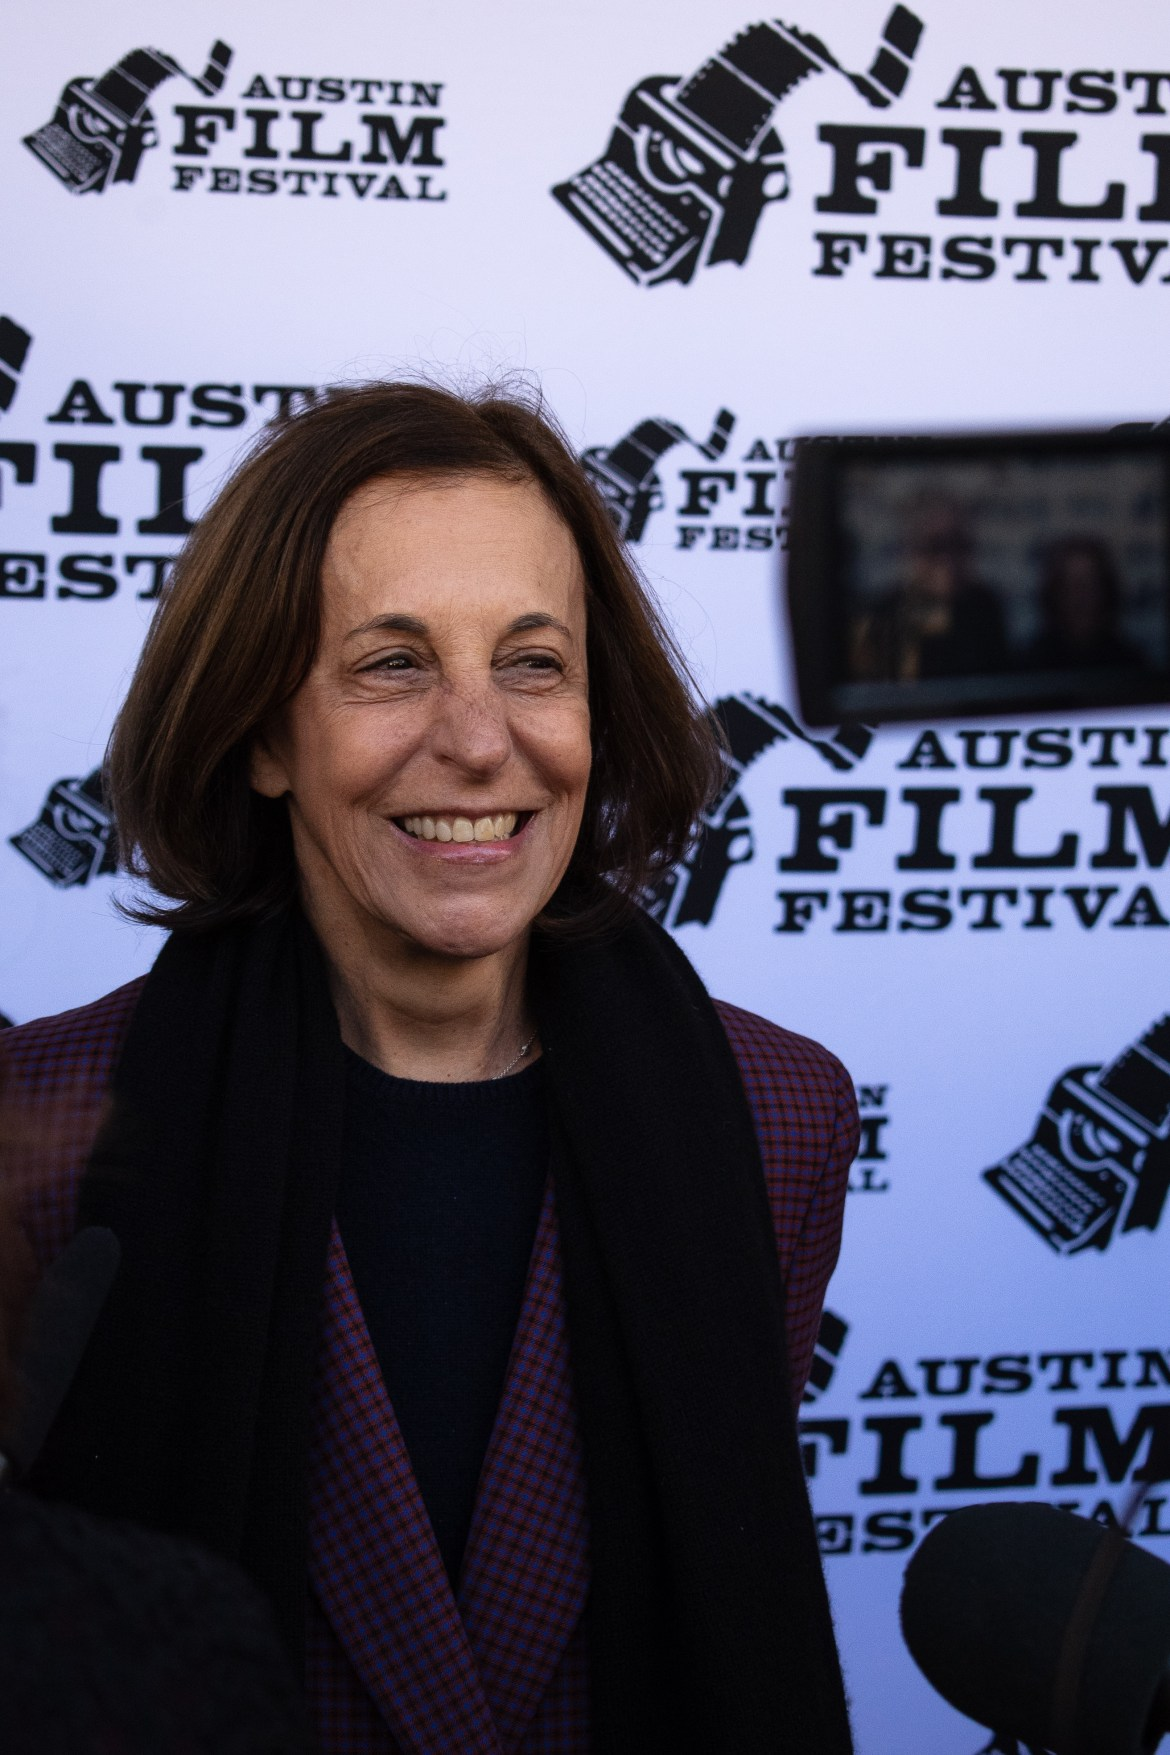 Woman smiles infront of the Austin Film Festival red carpet back drop.